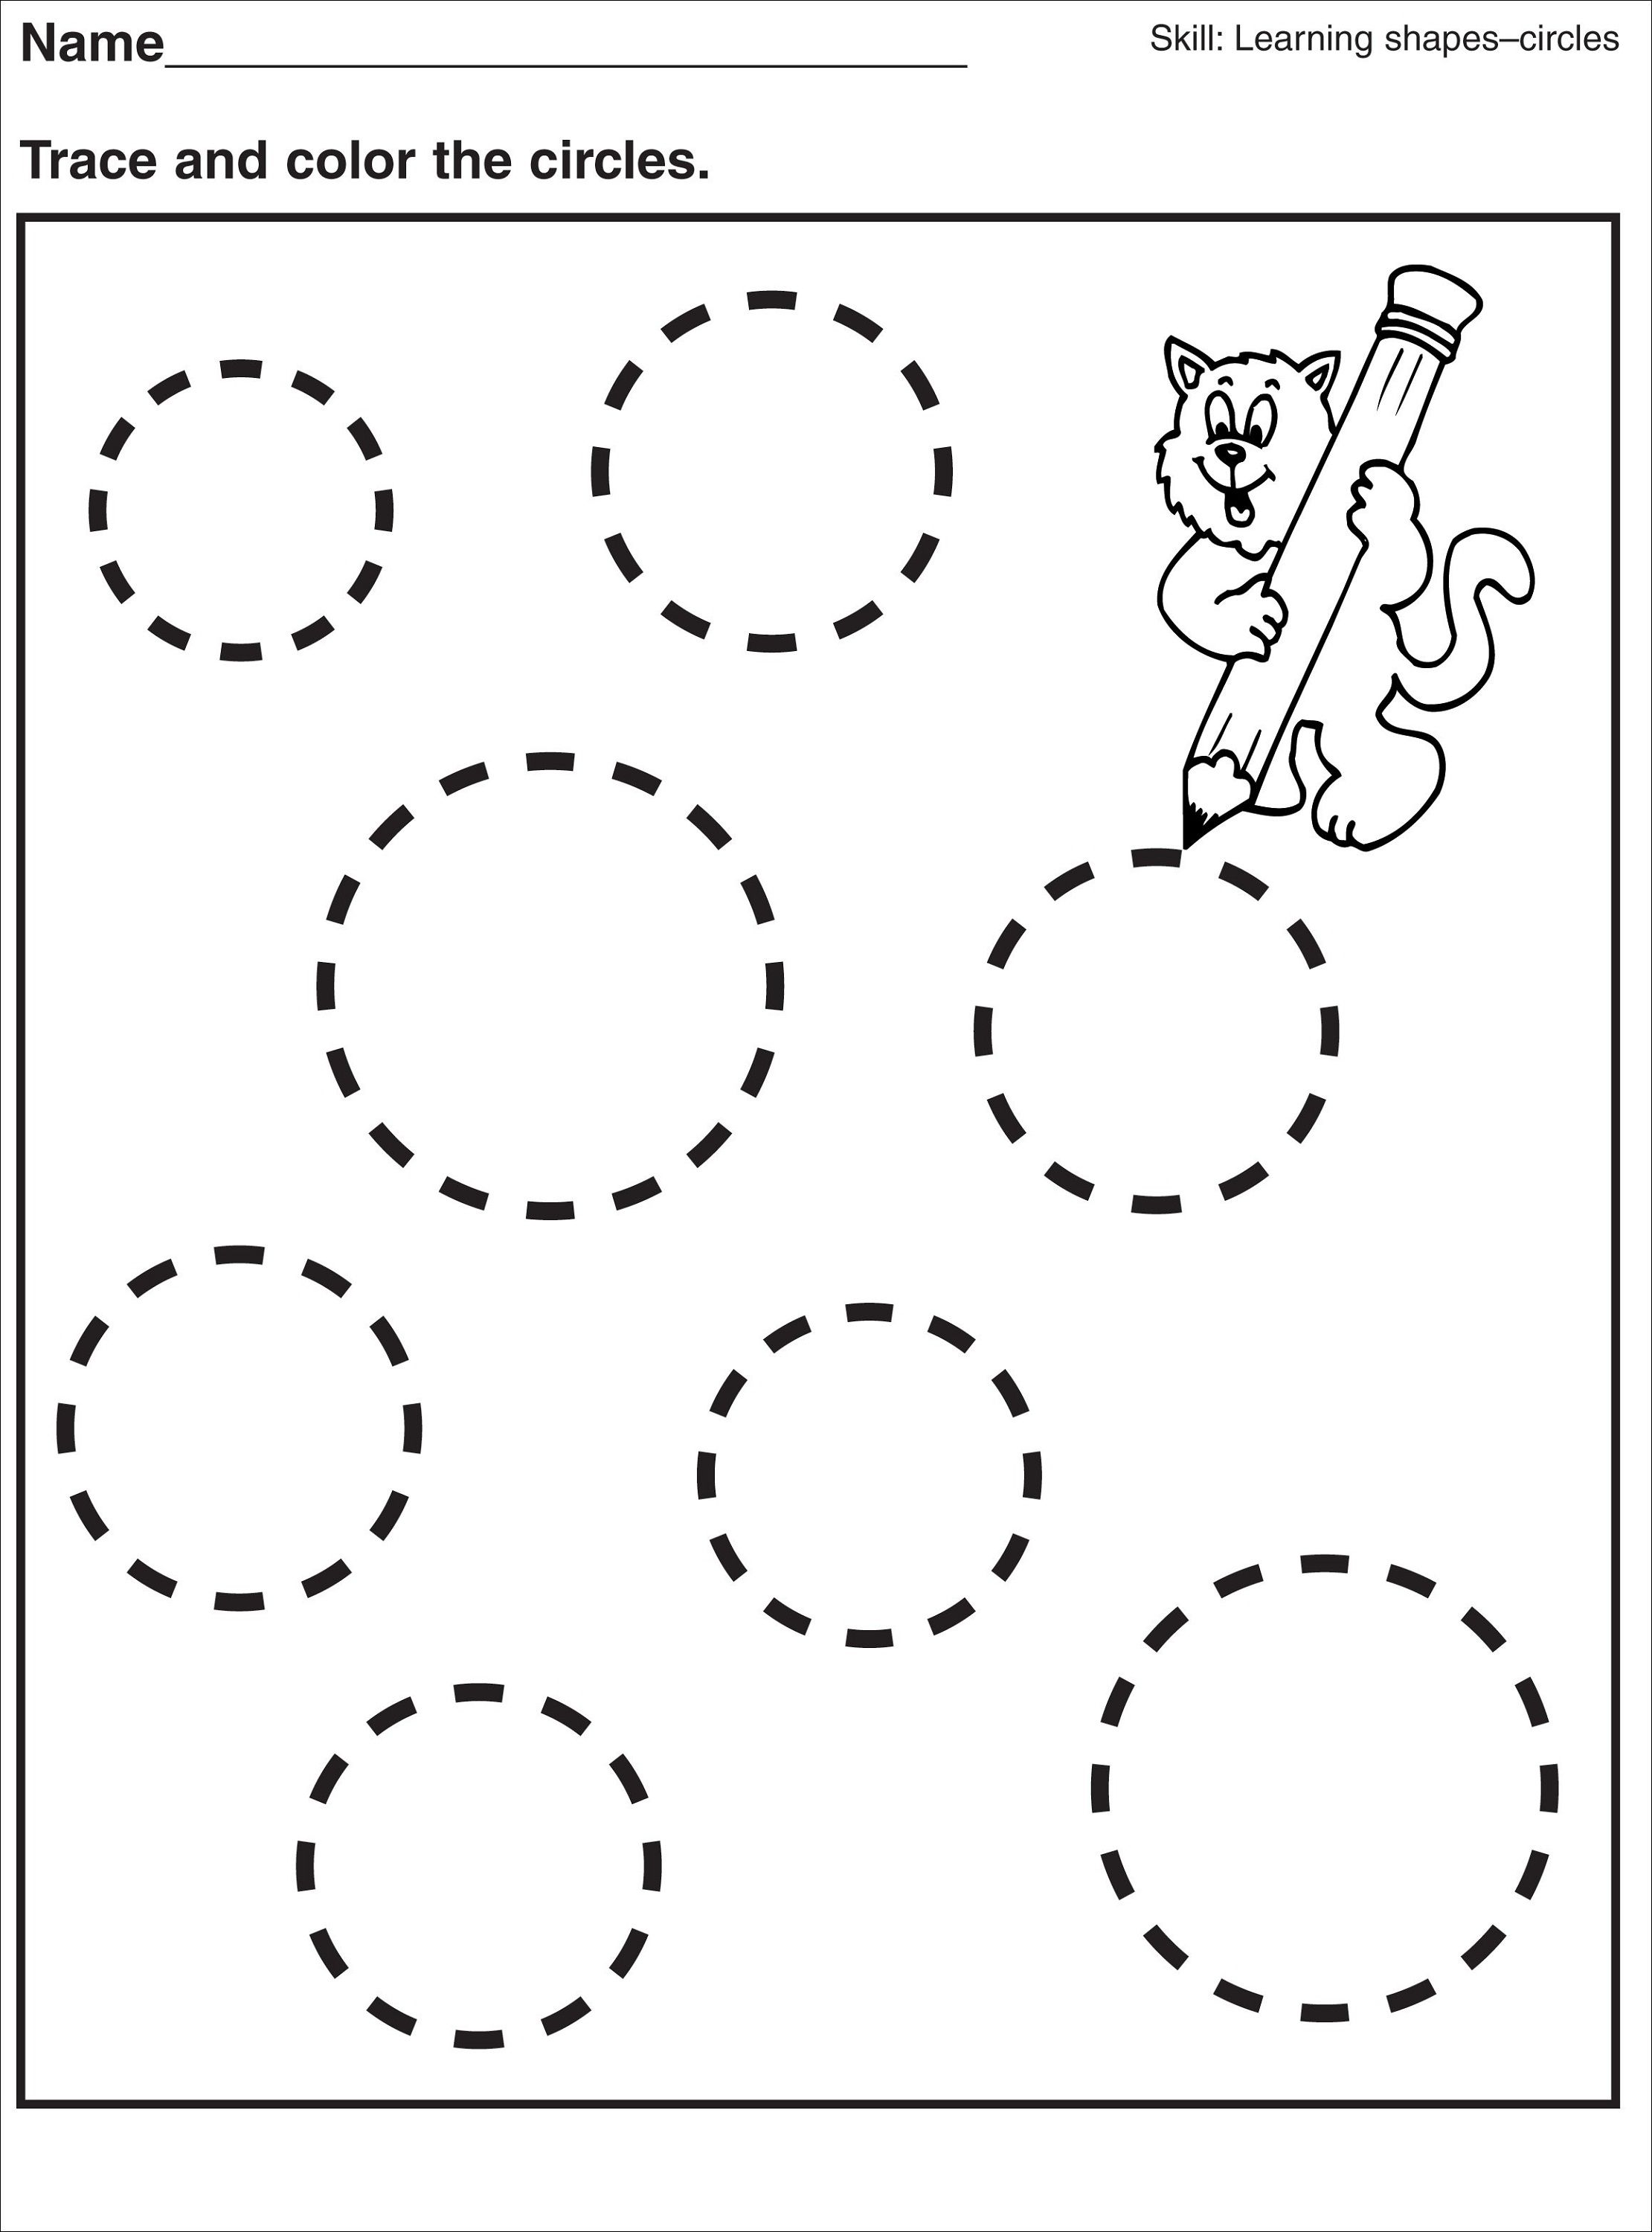 Tracing Circle Worksheets for Preschool Activity Shelter – Name Tracer Worksheets